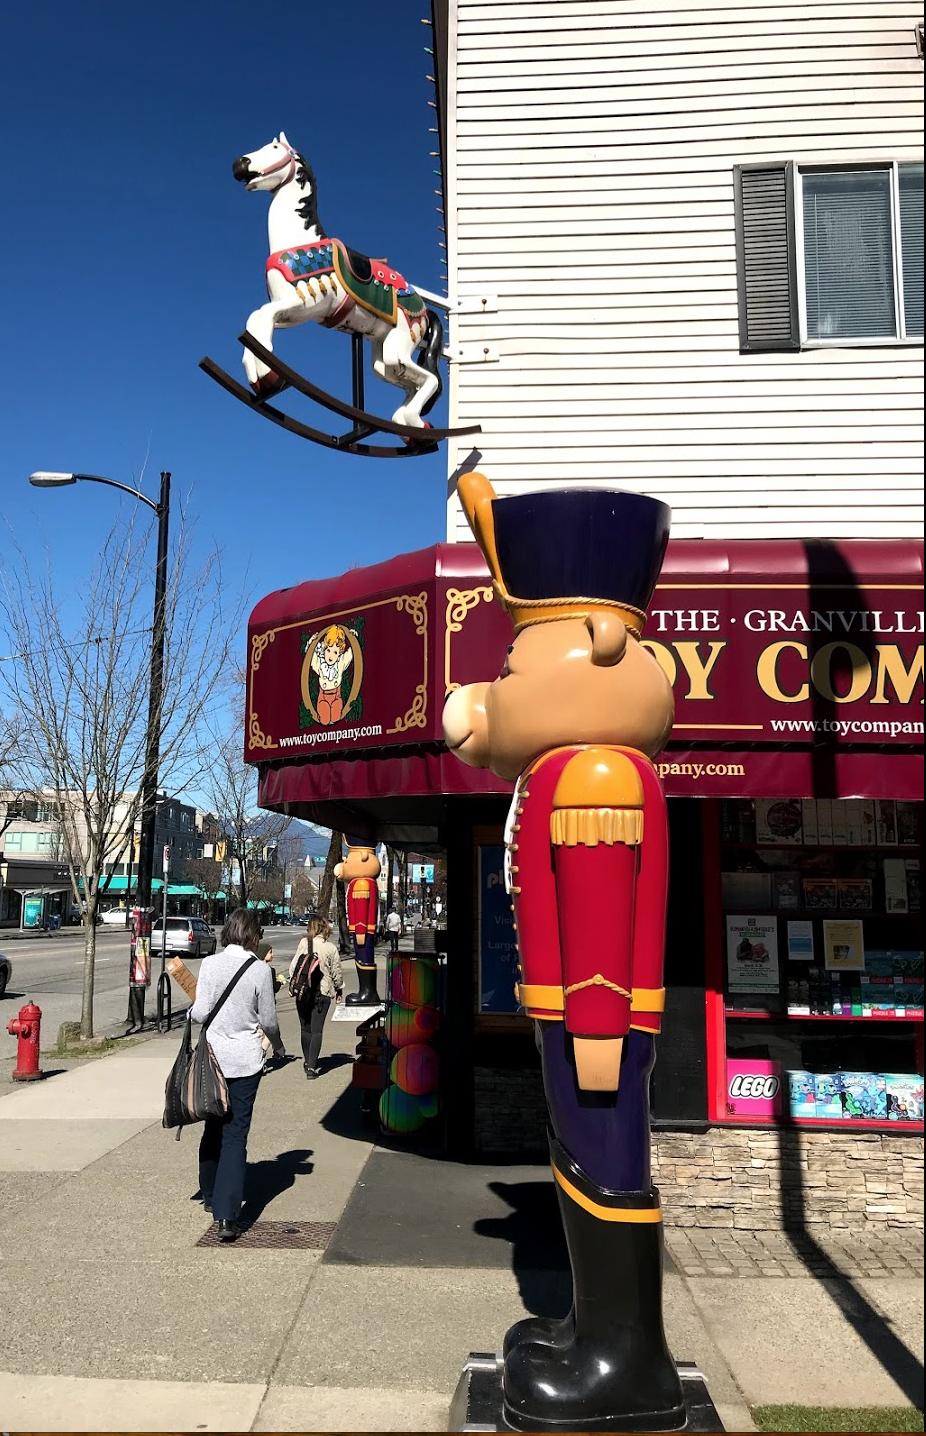 The Granville Island Toy Company opened a second location on Main Street in 2007.